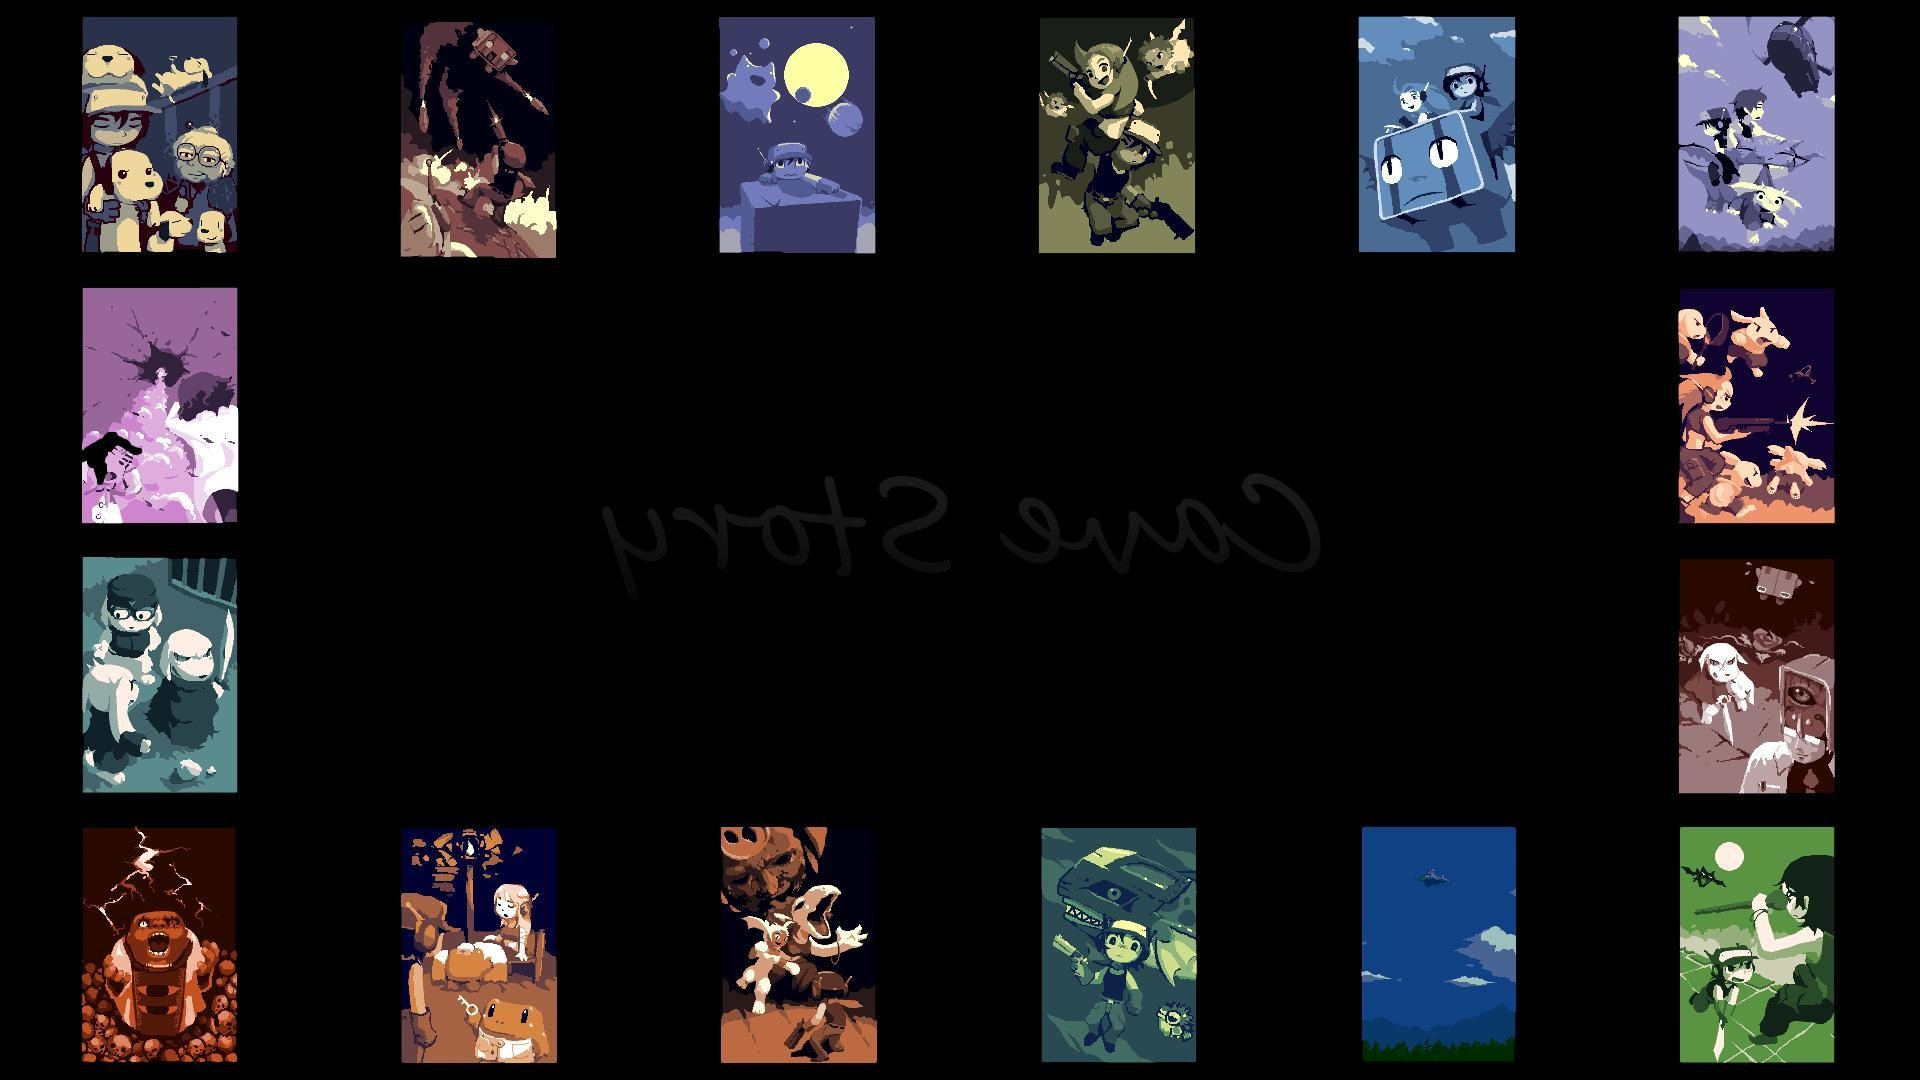 1920x1080 Cave Story Widescreen Background Cool Cave Story Wallpaper